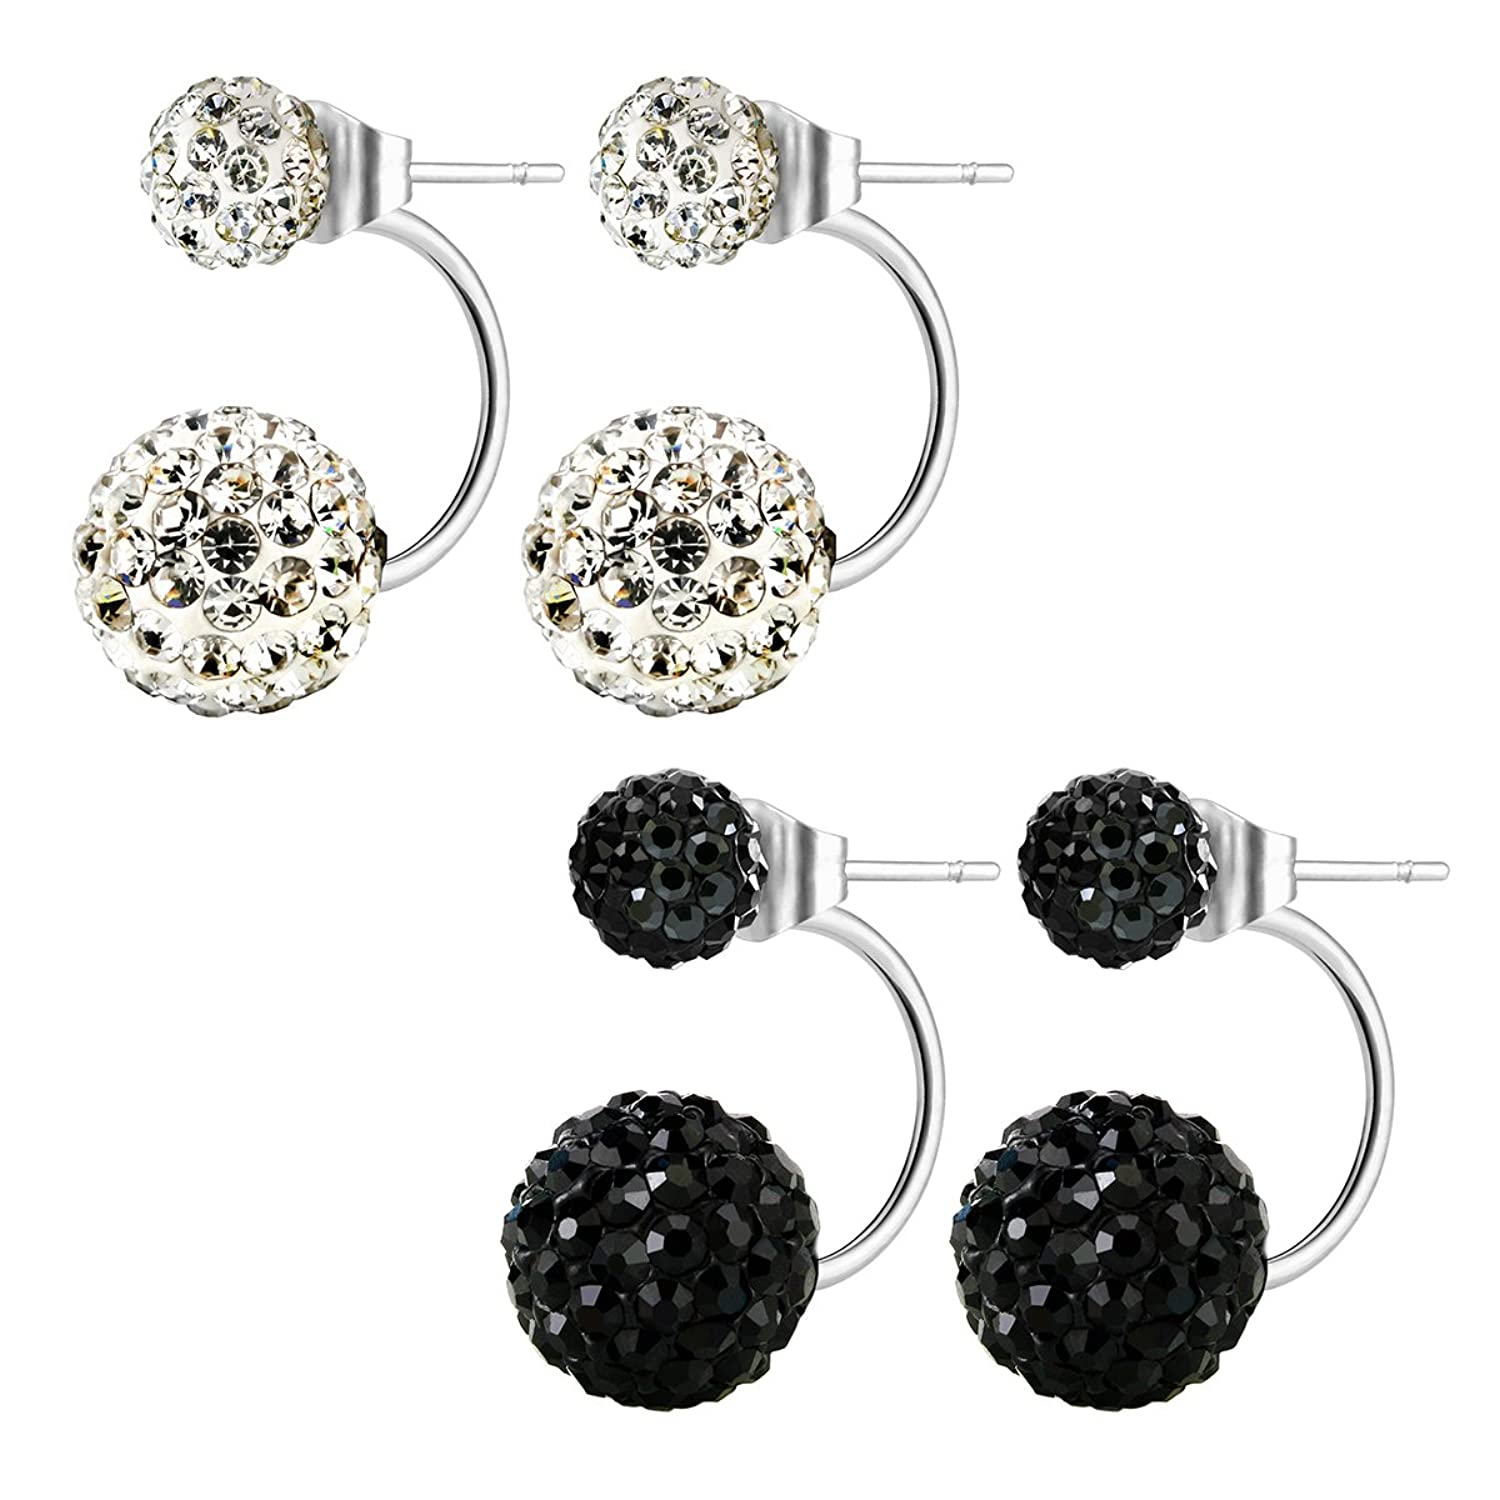 JewelrieShop Lady Assorted Colors Hypoallergenic Double Balls Stud Earrings Rhinestones Crystals Ear Rings